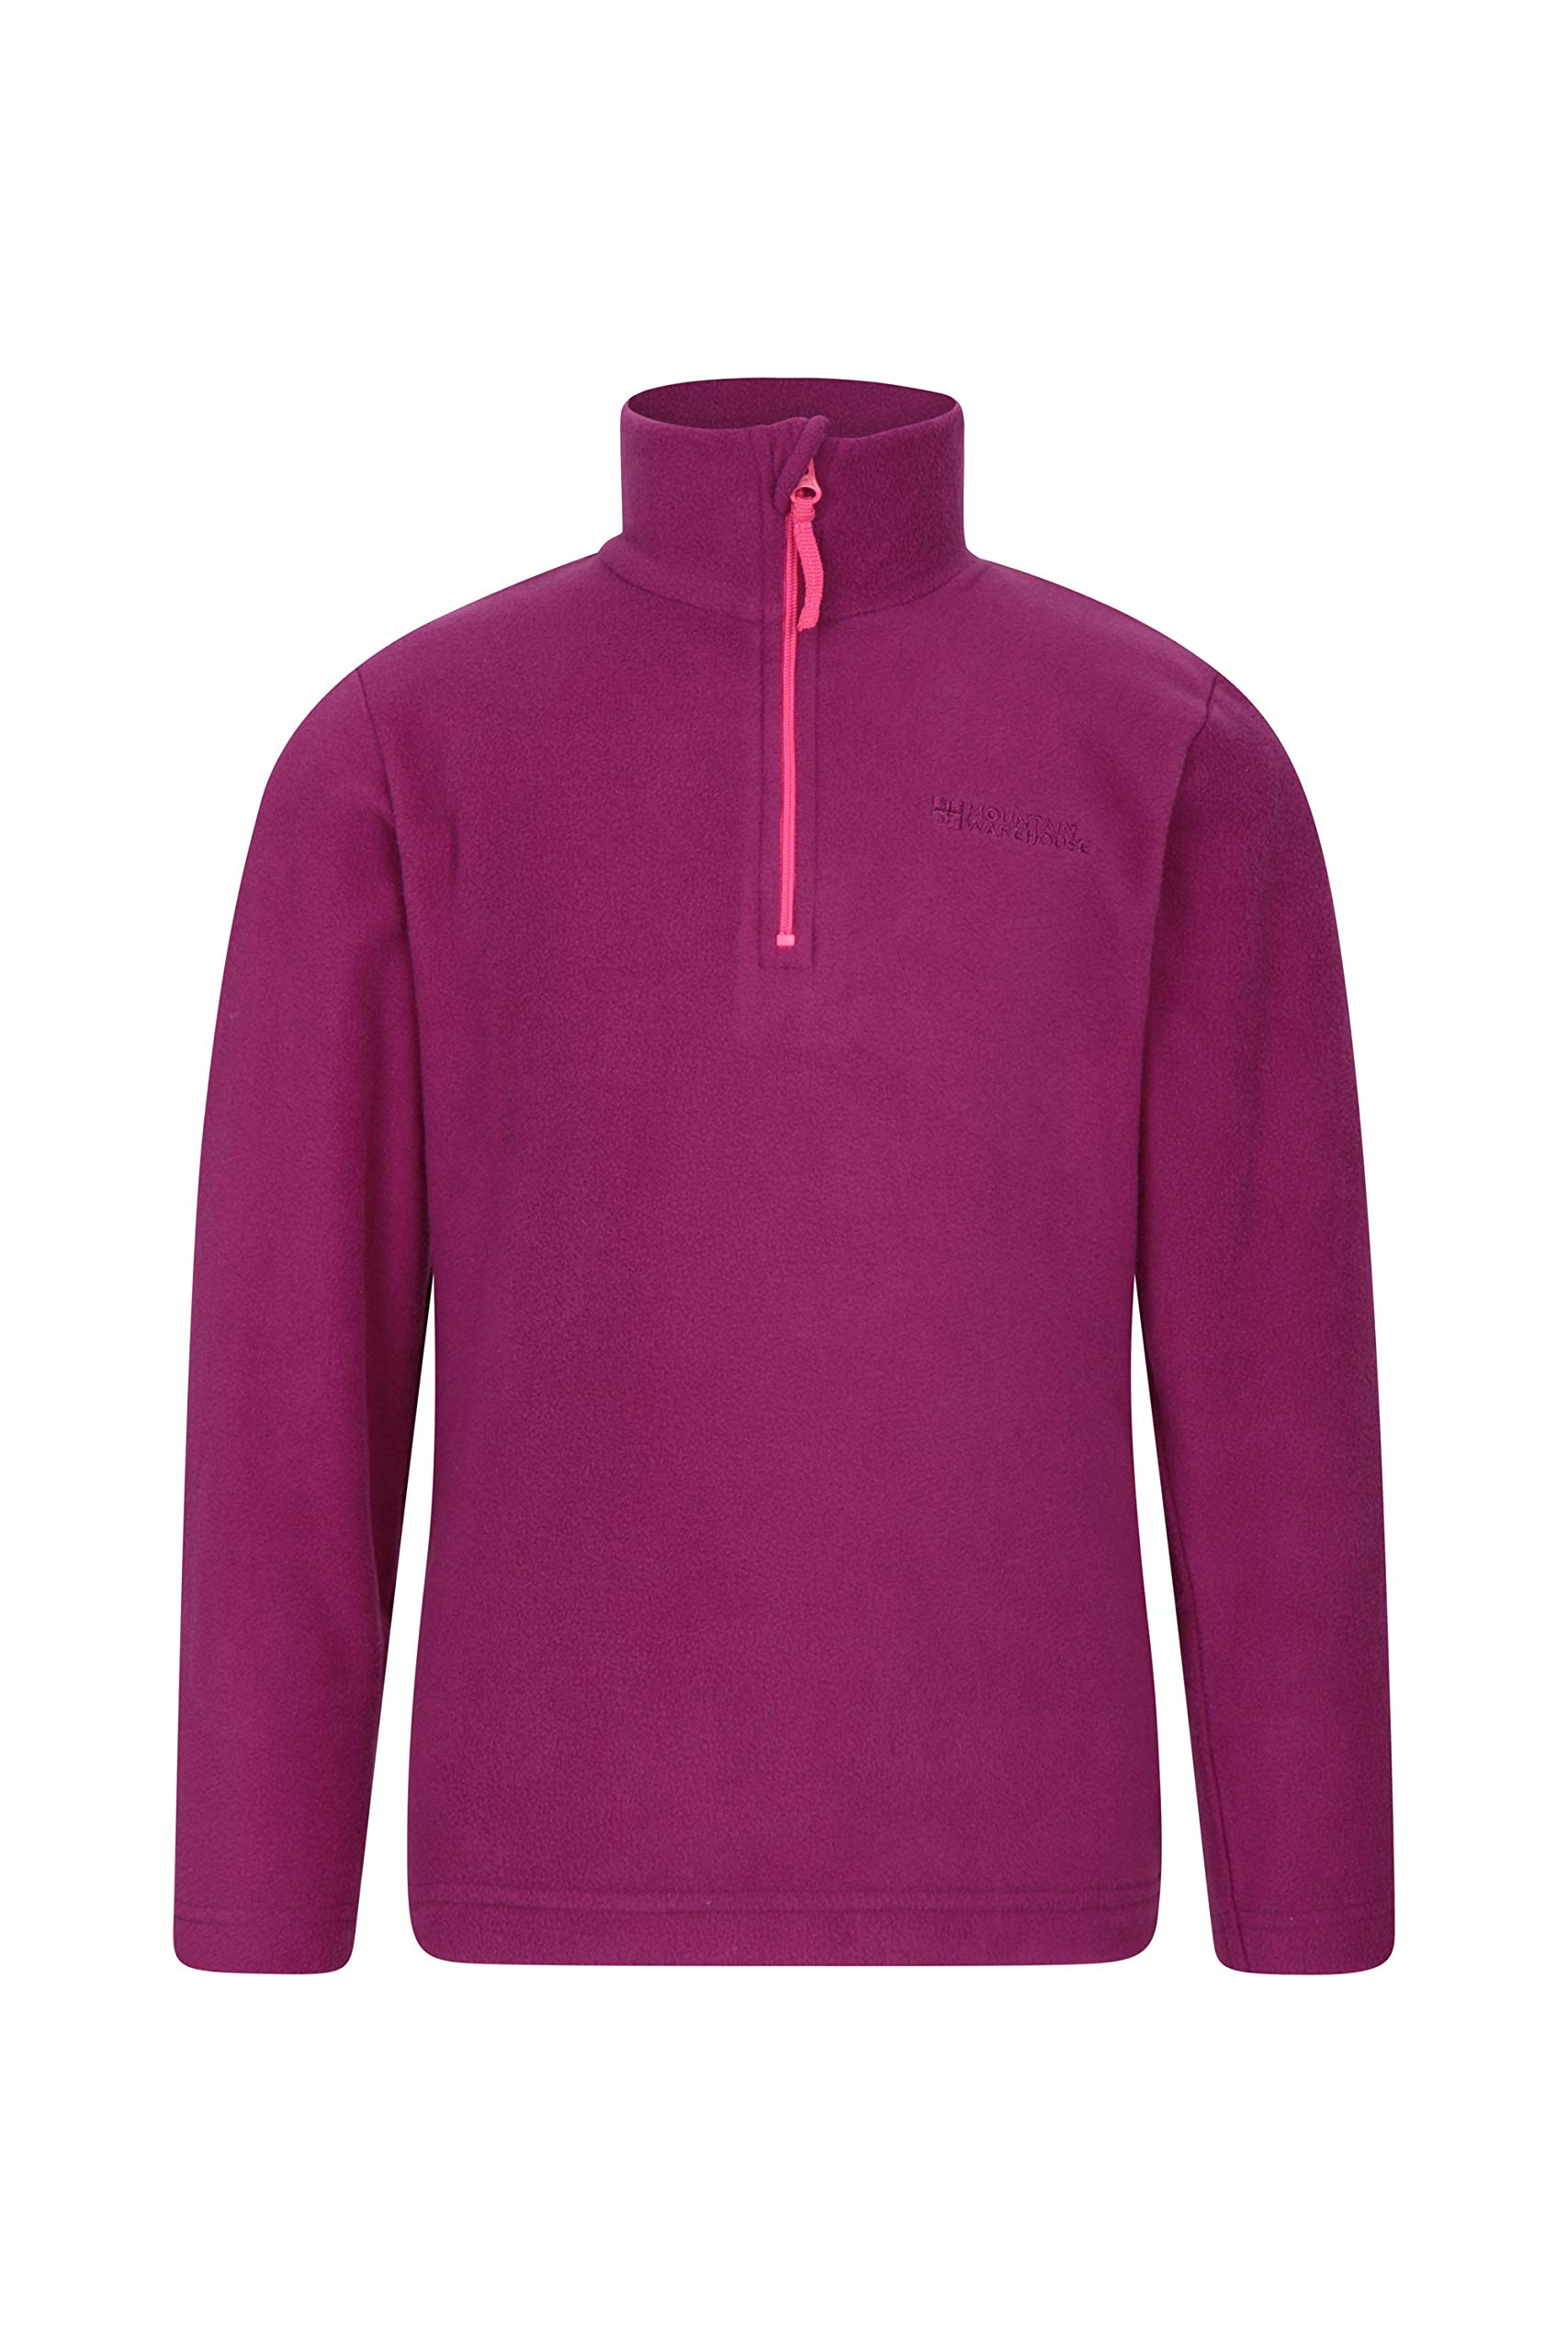 Warm Pullover Lightweight /& Breathable Sweater Outdoors Suitable for Winter Layering Quick Drying Sweatshirt Mountain Warehouse Camber Kids Fleece Top